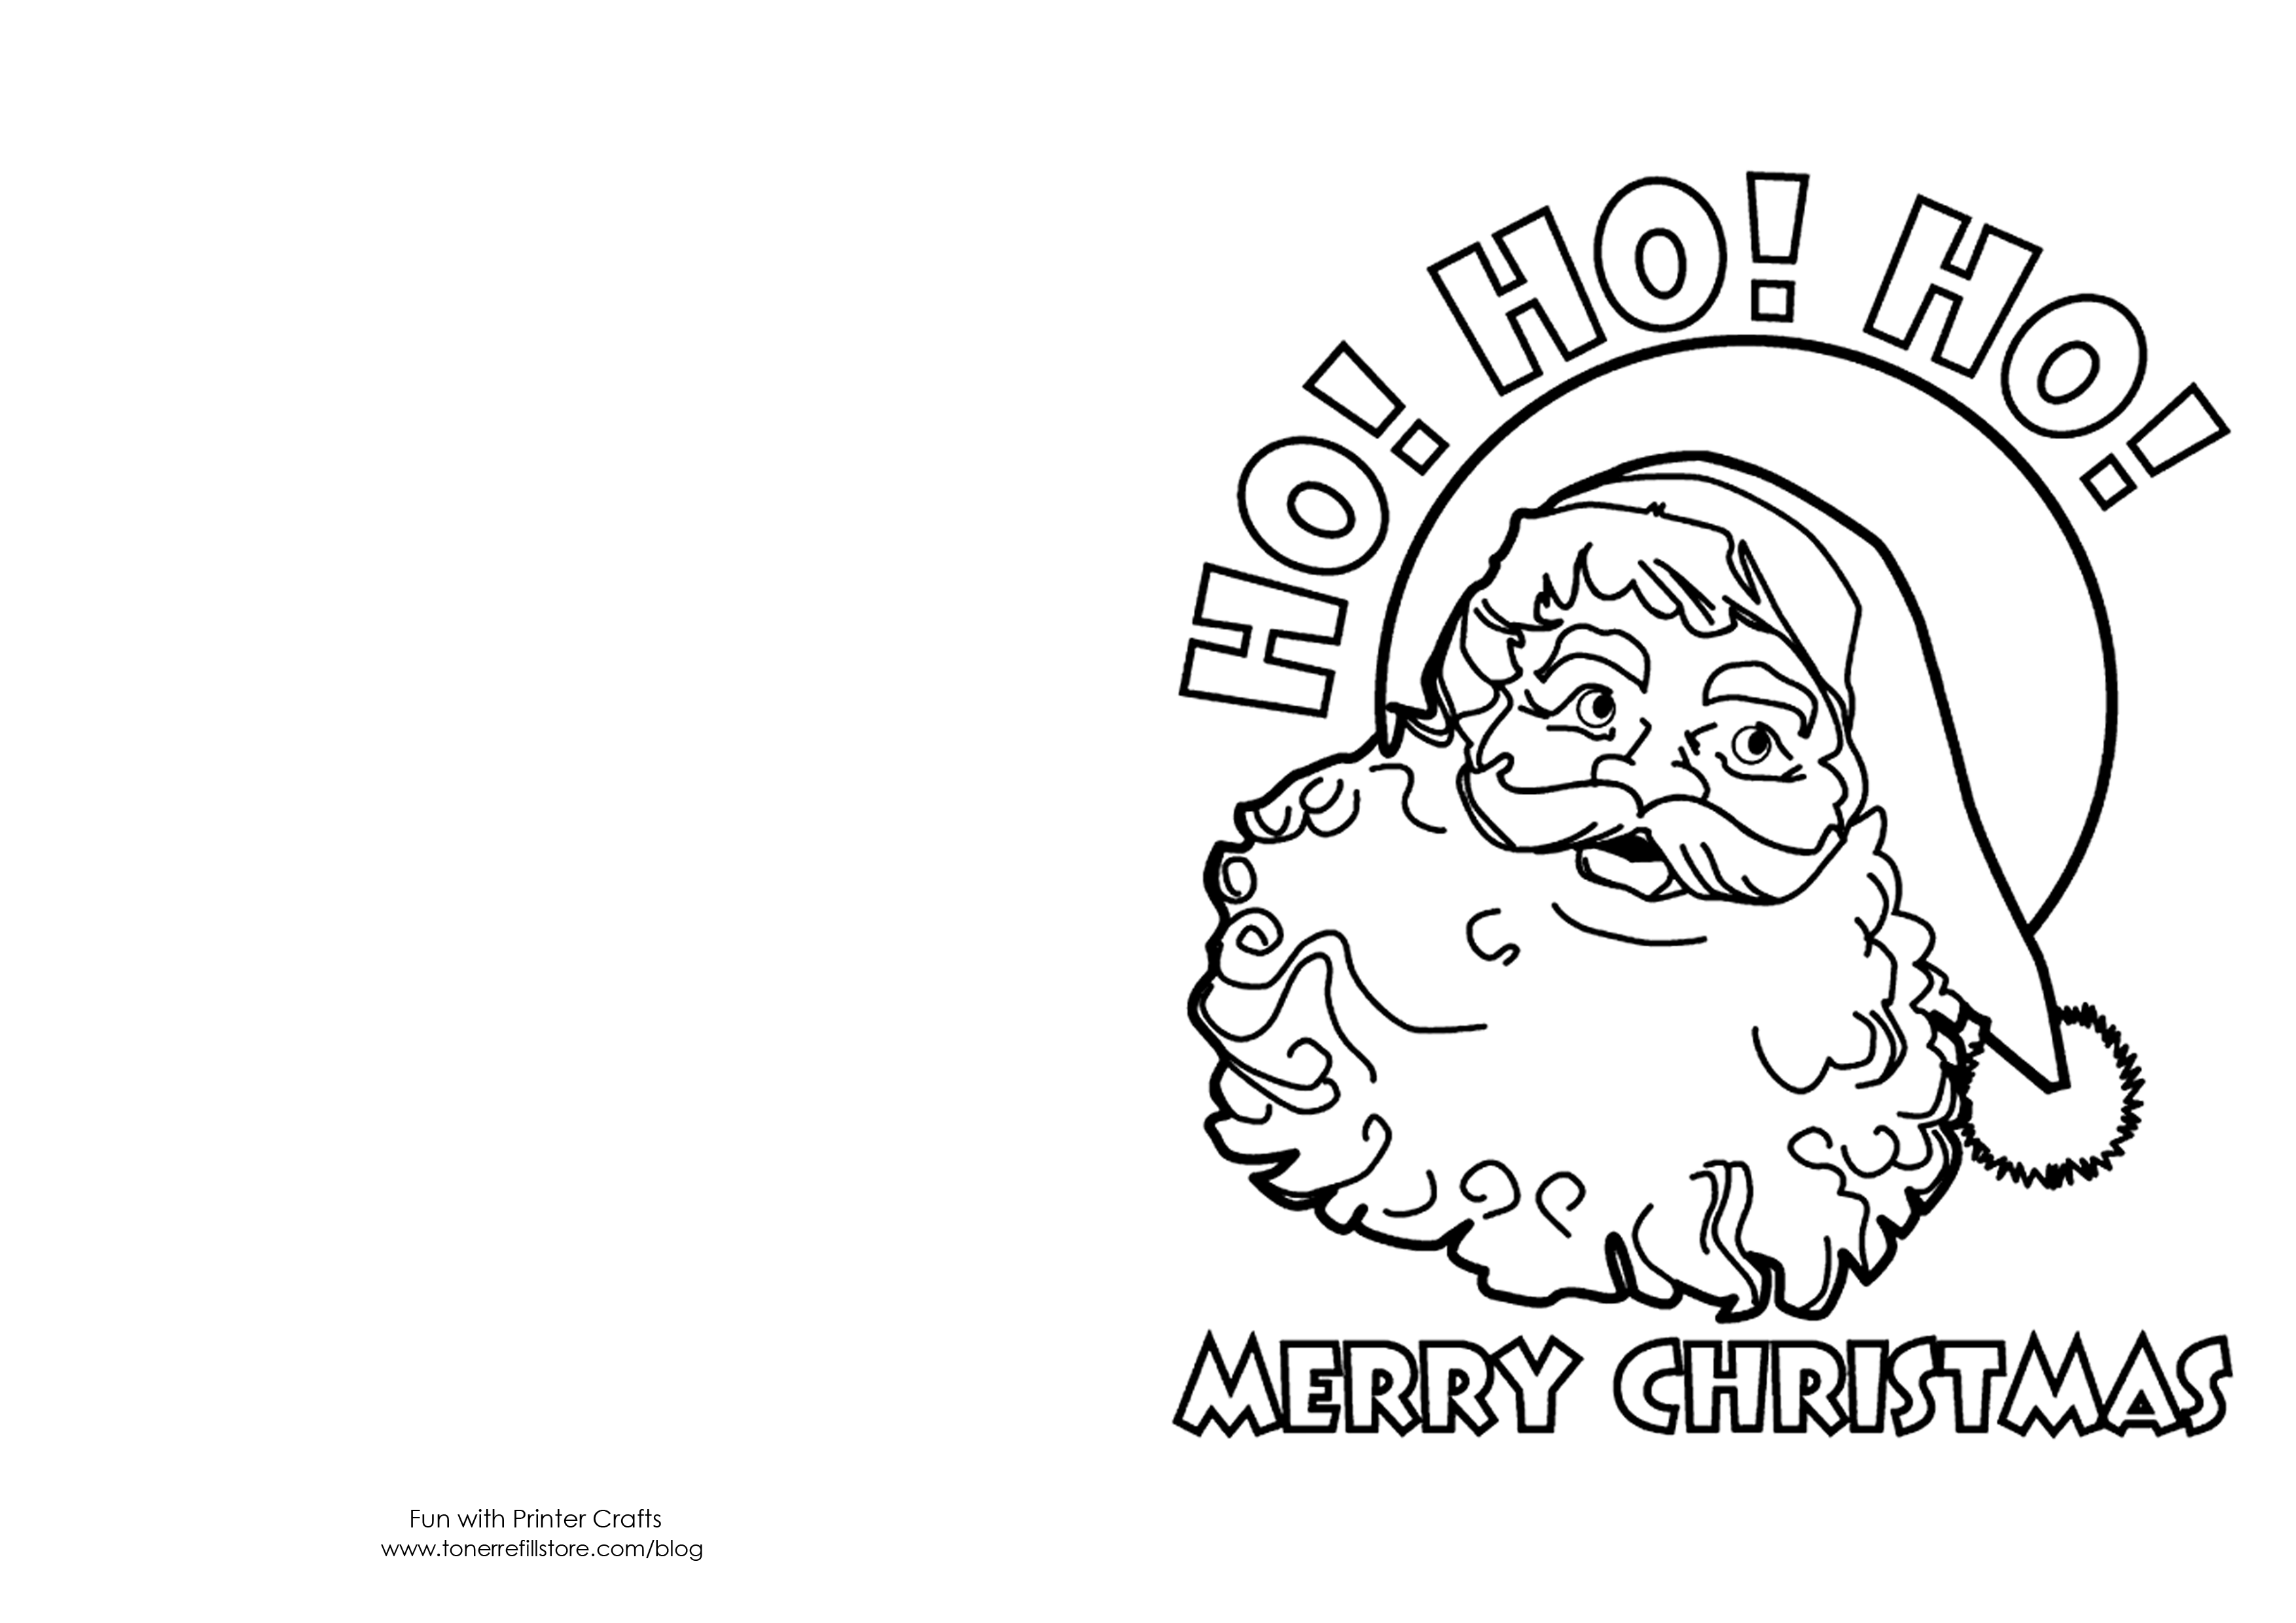 coloring christmas card templates how to make printable christmas cards for kids to color templates card coloring christmas